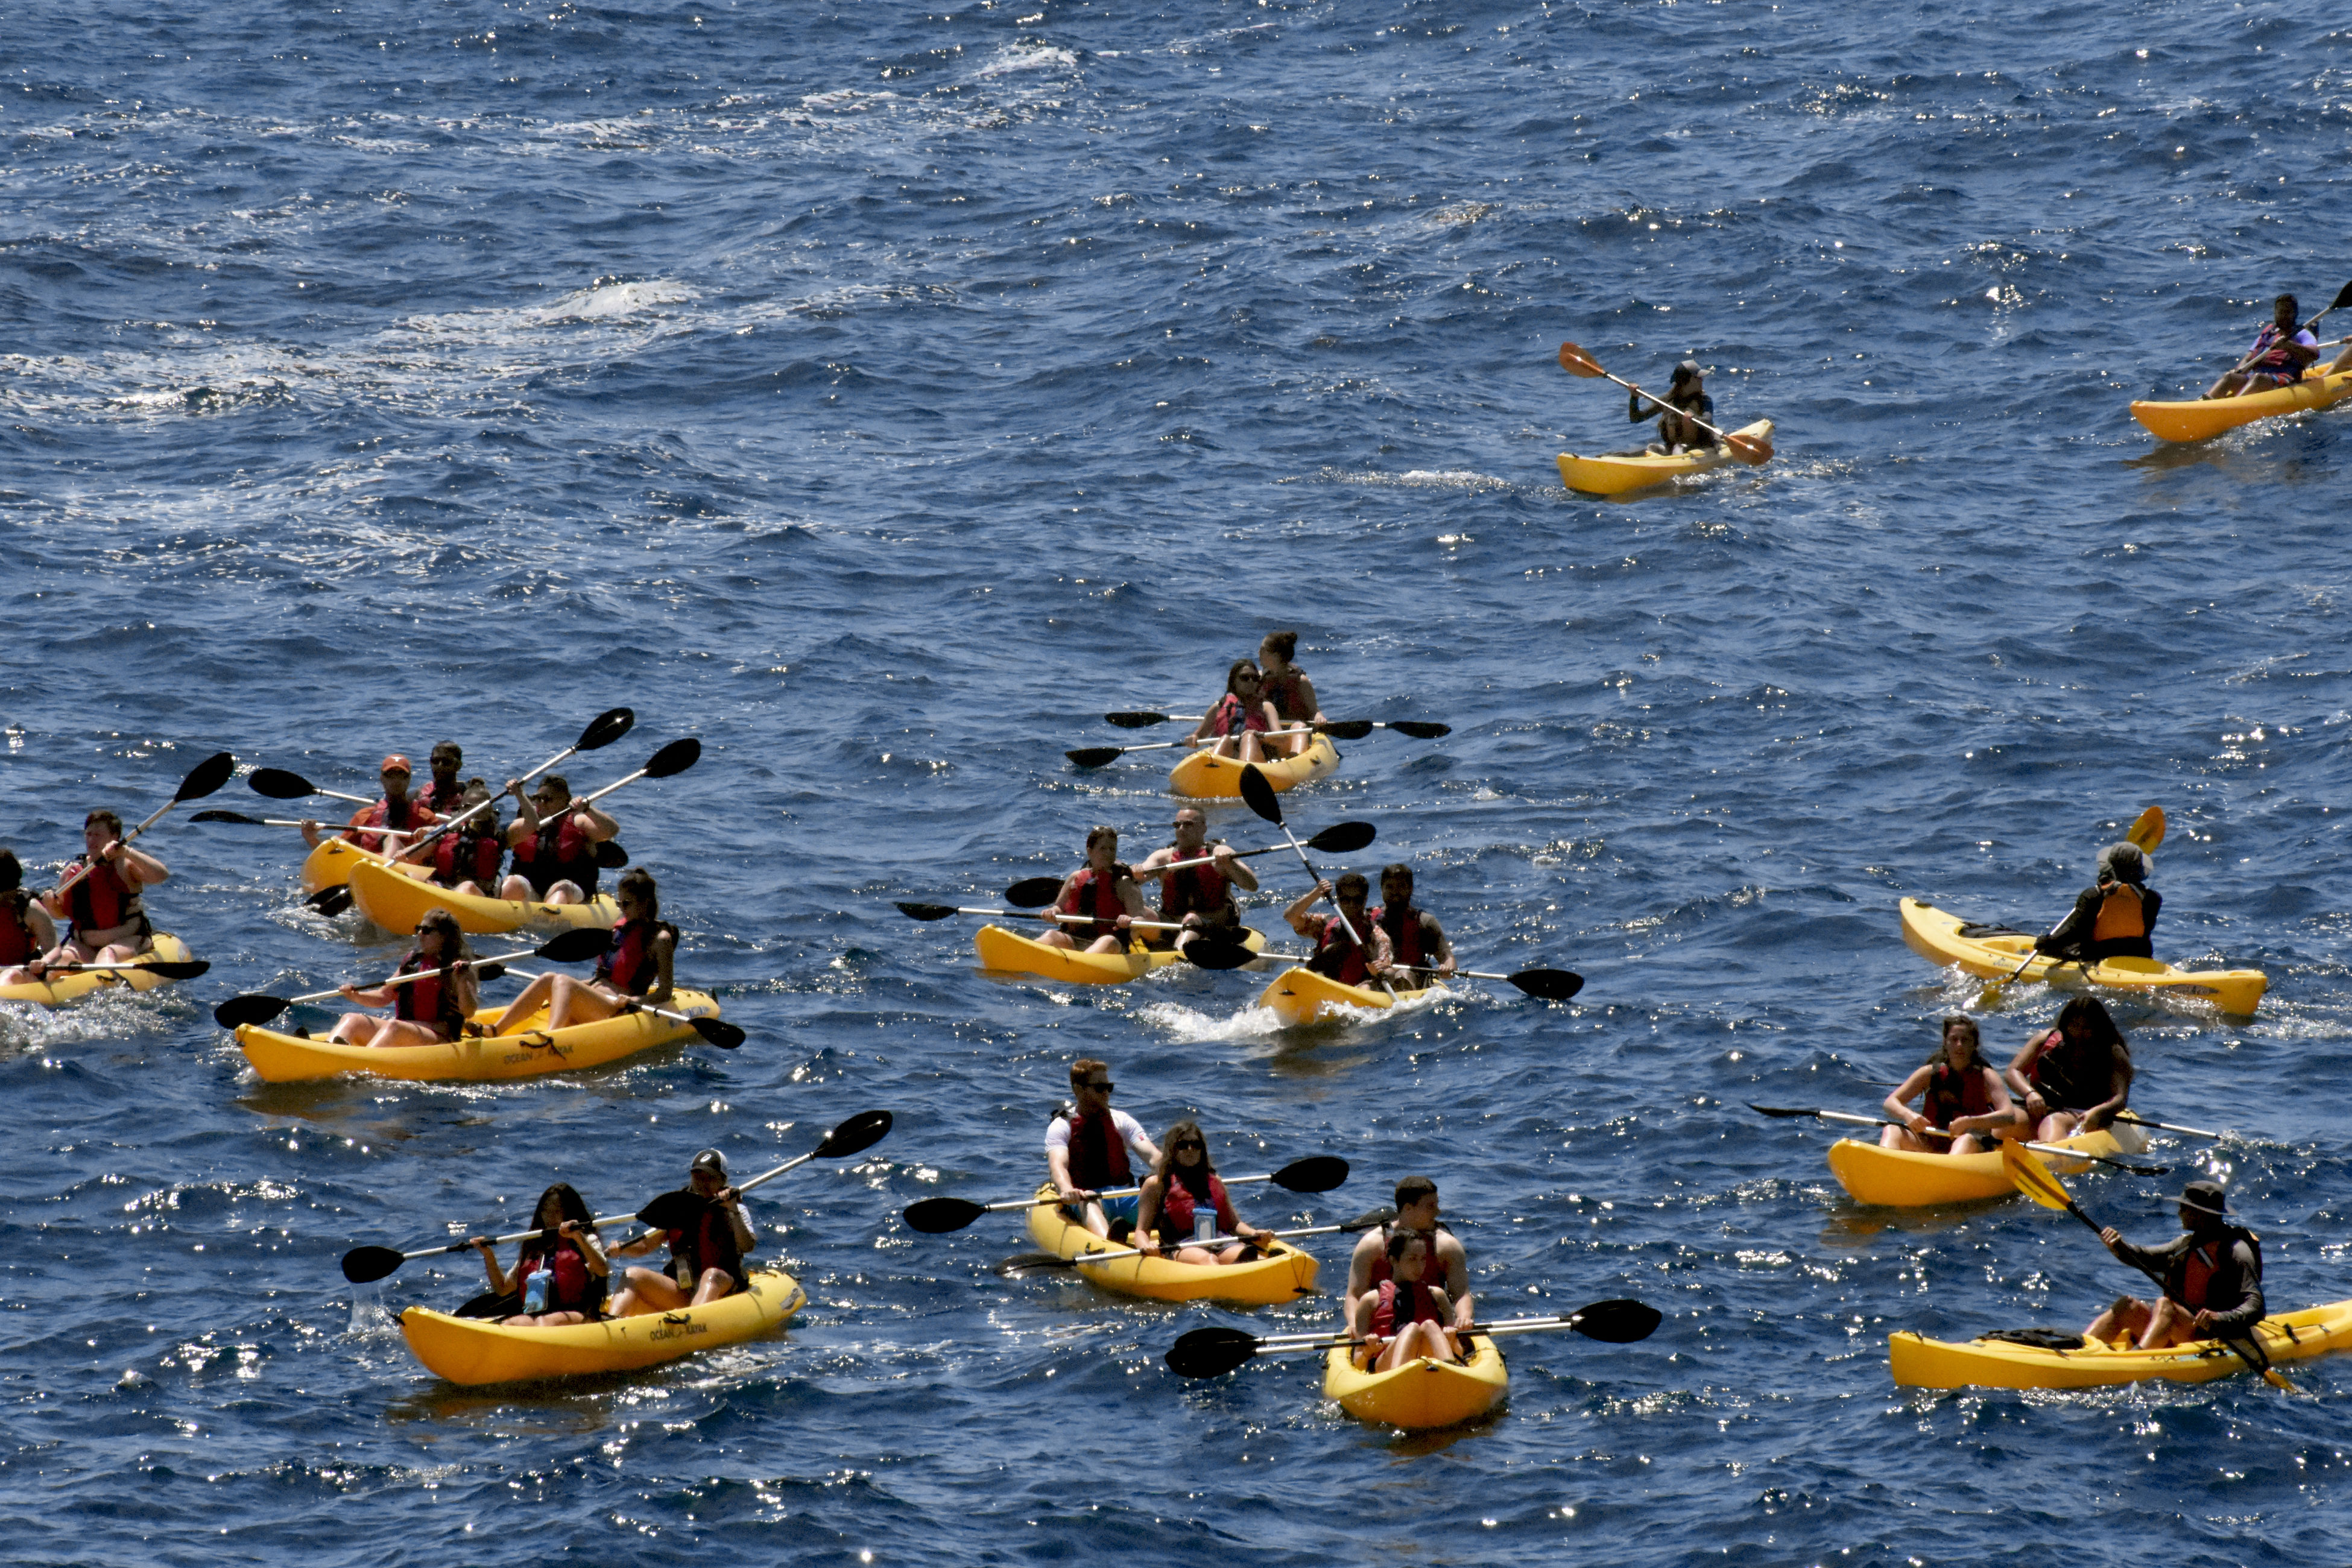 leisure activity, water, large group of people, real people, day, togetherness, men, lifestyles, waterfront, challenge, women, outdoors, rafting, inflatable raft, adventure, nature, food, people